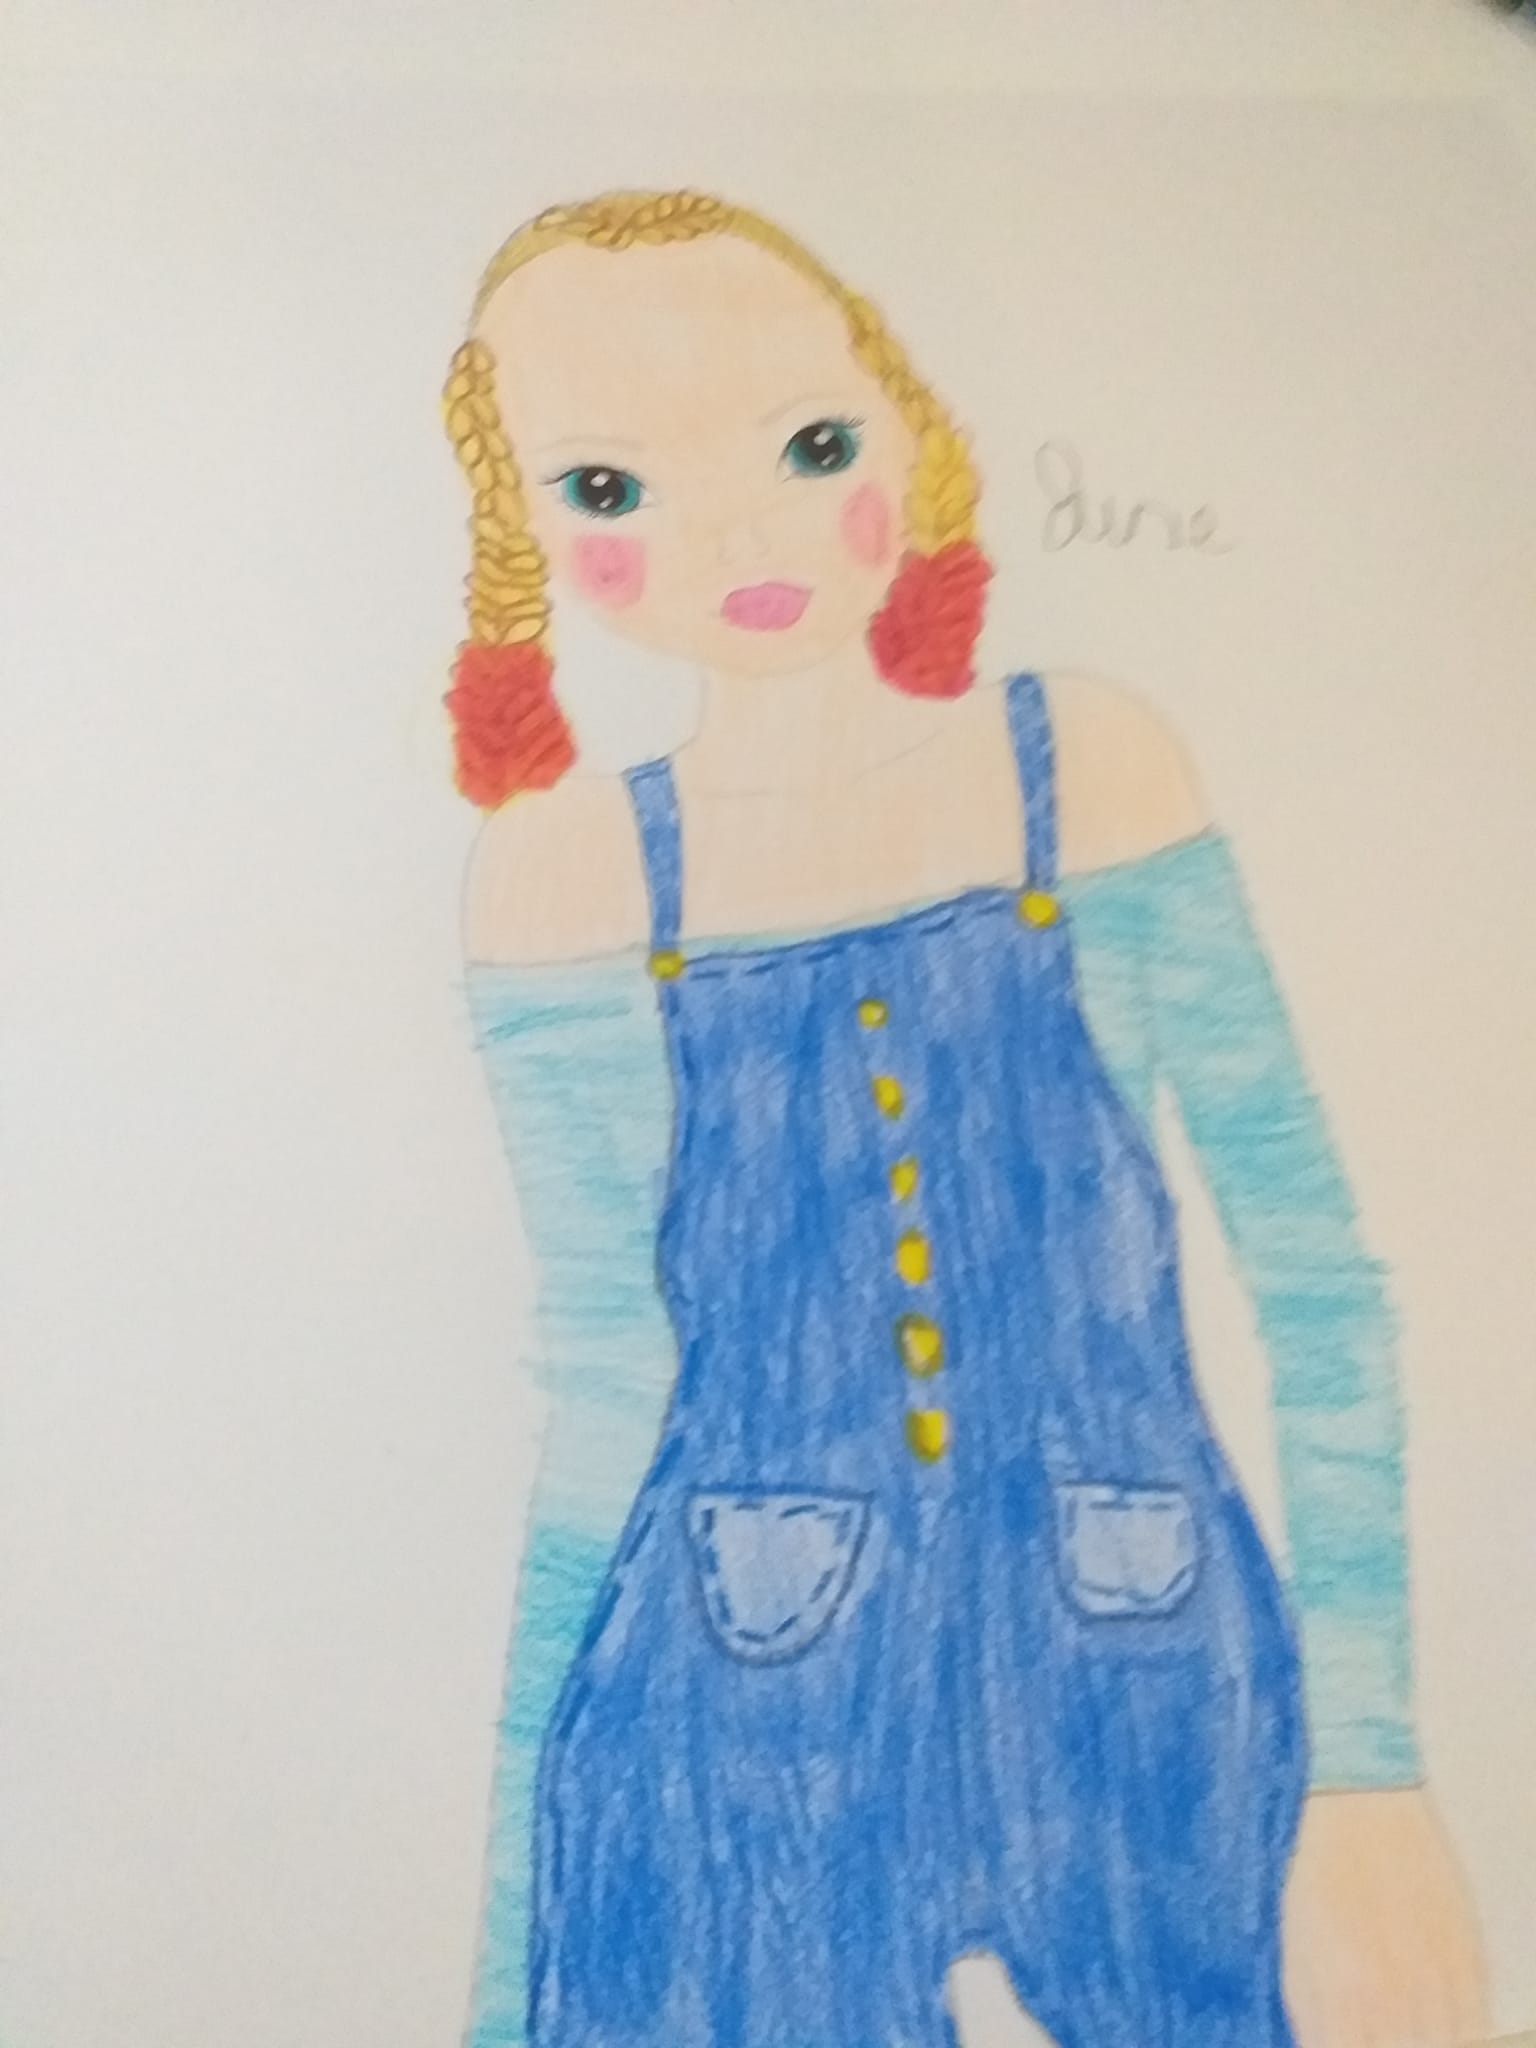 Serena M., 11years, from Italy